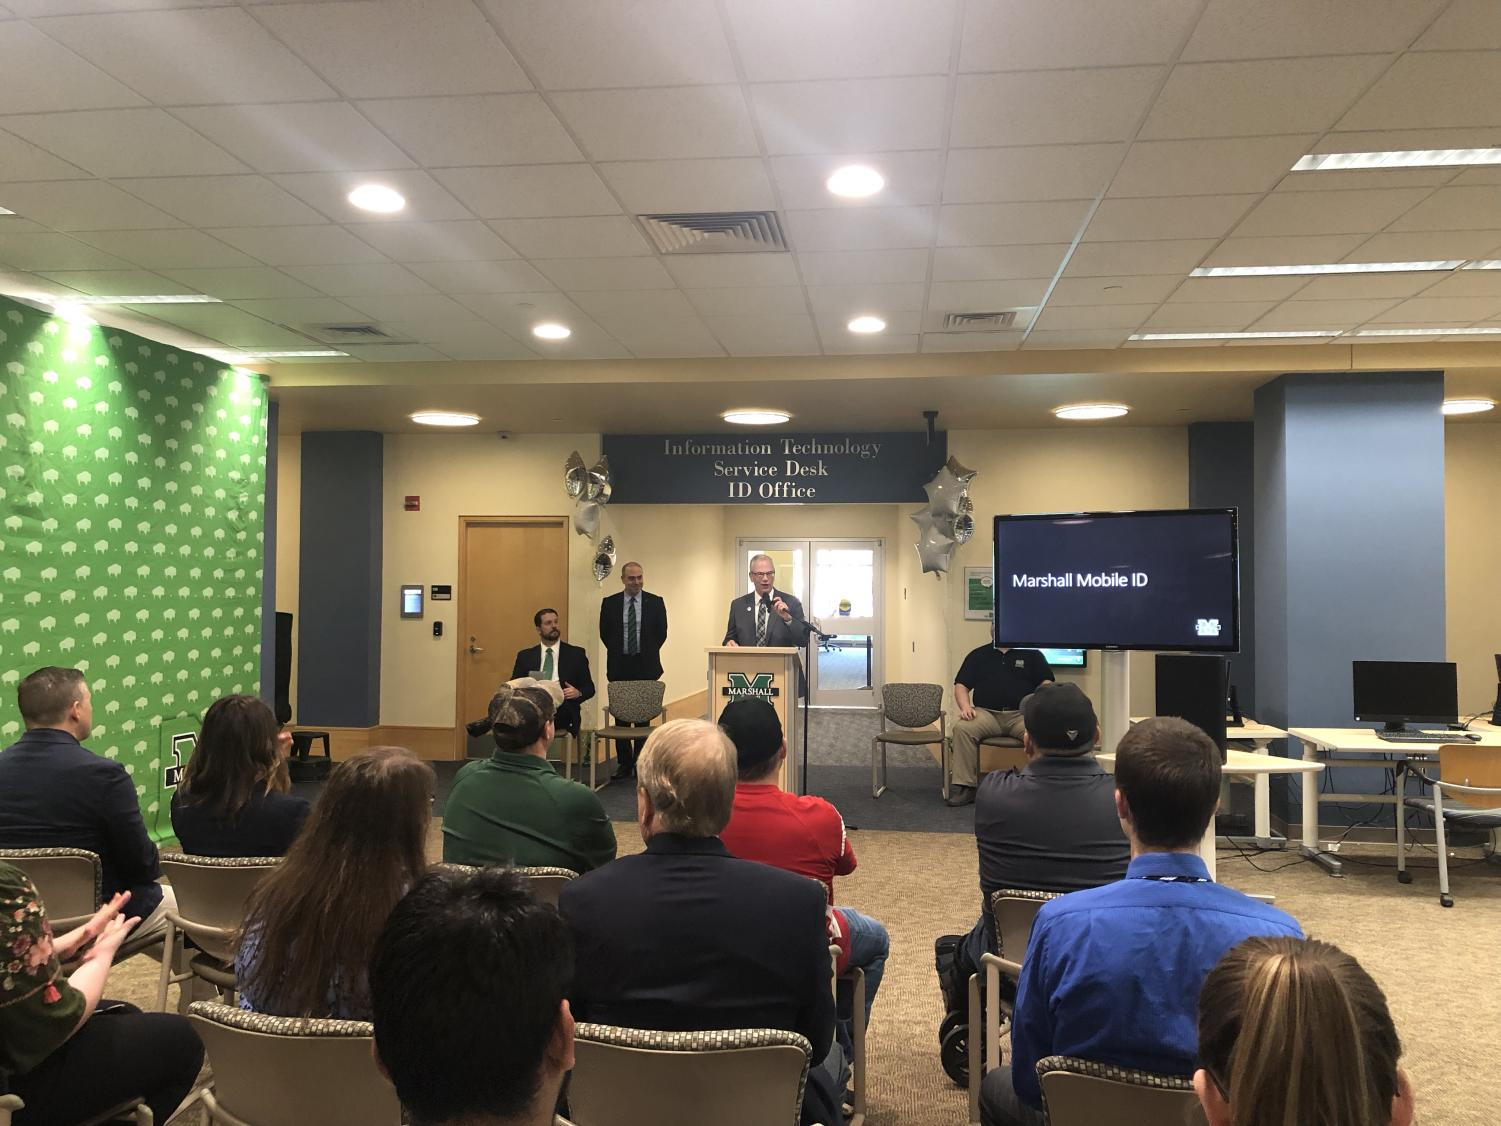 President Jerry Gilbert expressed his pride in Marshall for being one of only ten schools across the country that allows access to identification cards through mobile devices.